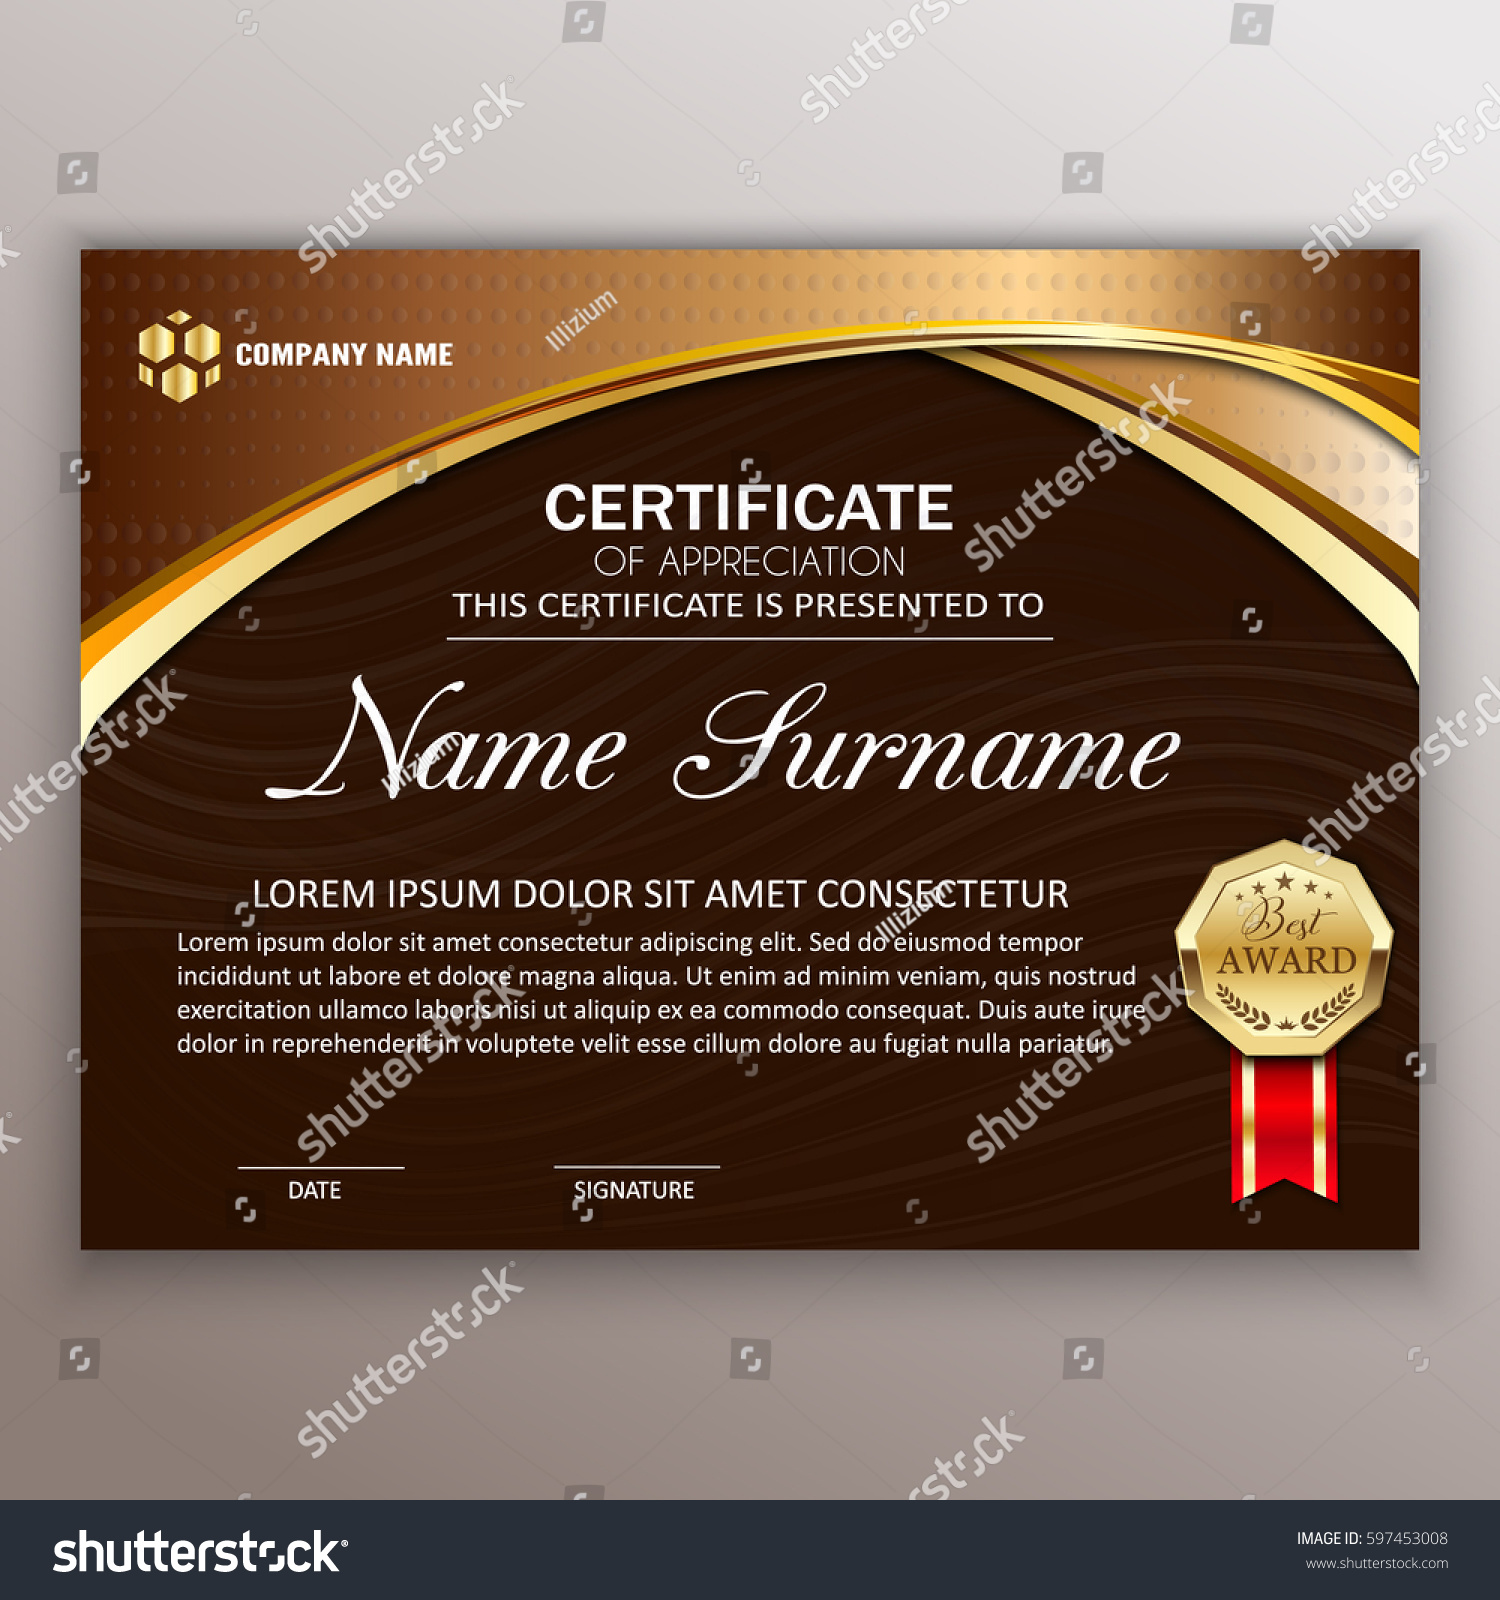 beautiful certificate template design best award stock